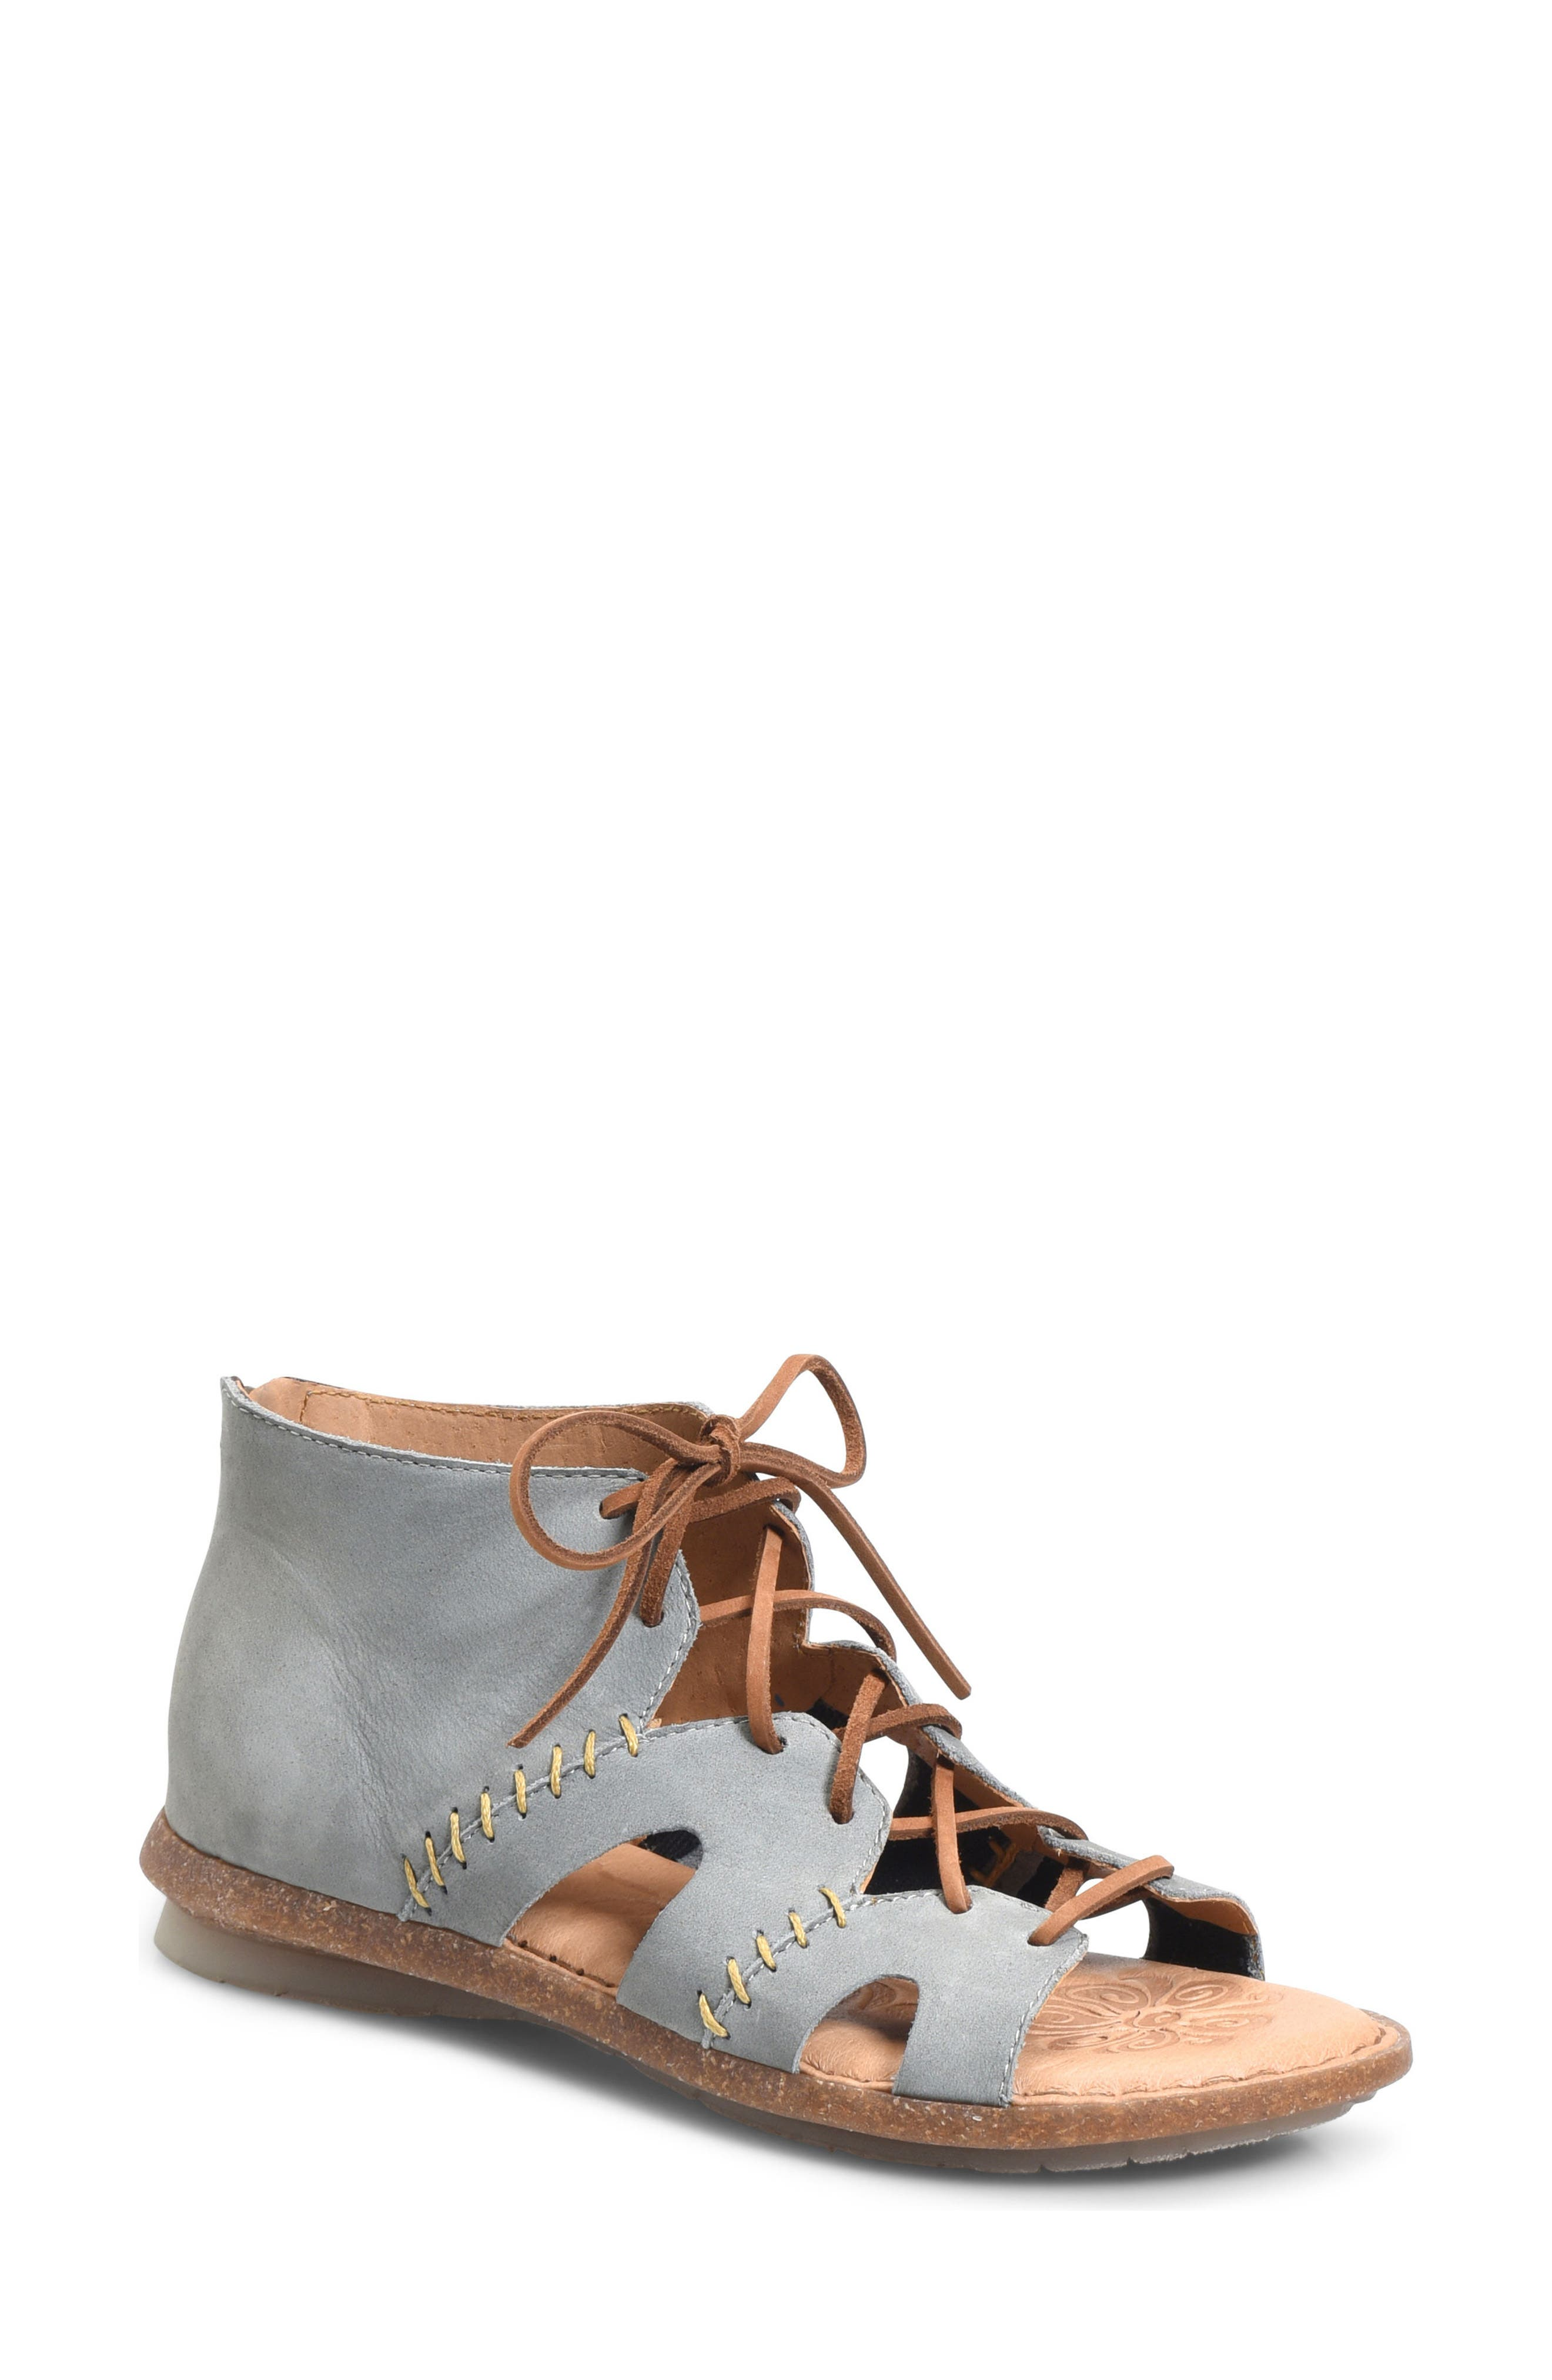 Børn Nea Lace-Up Sandal (Women)